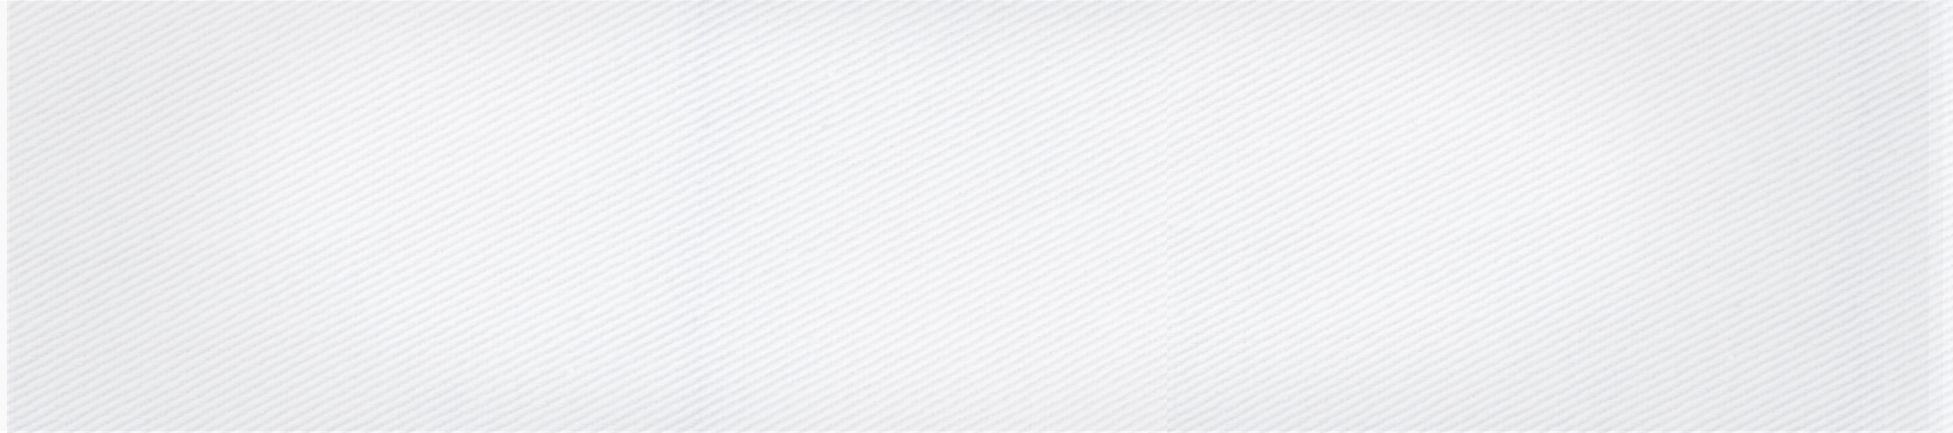 banner-pattern.png